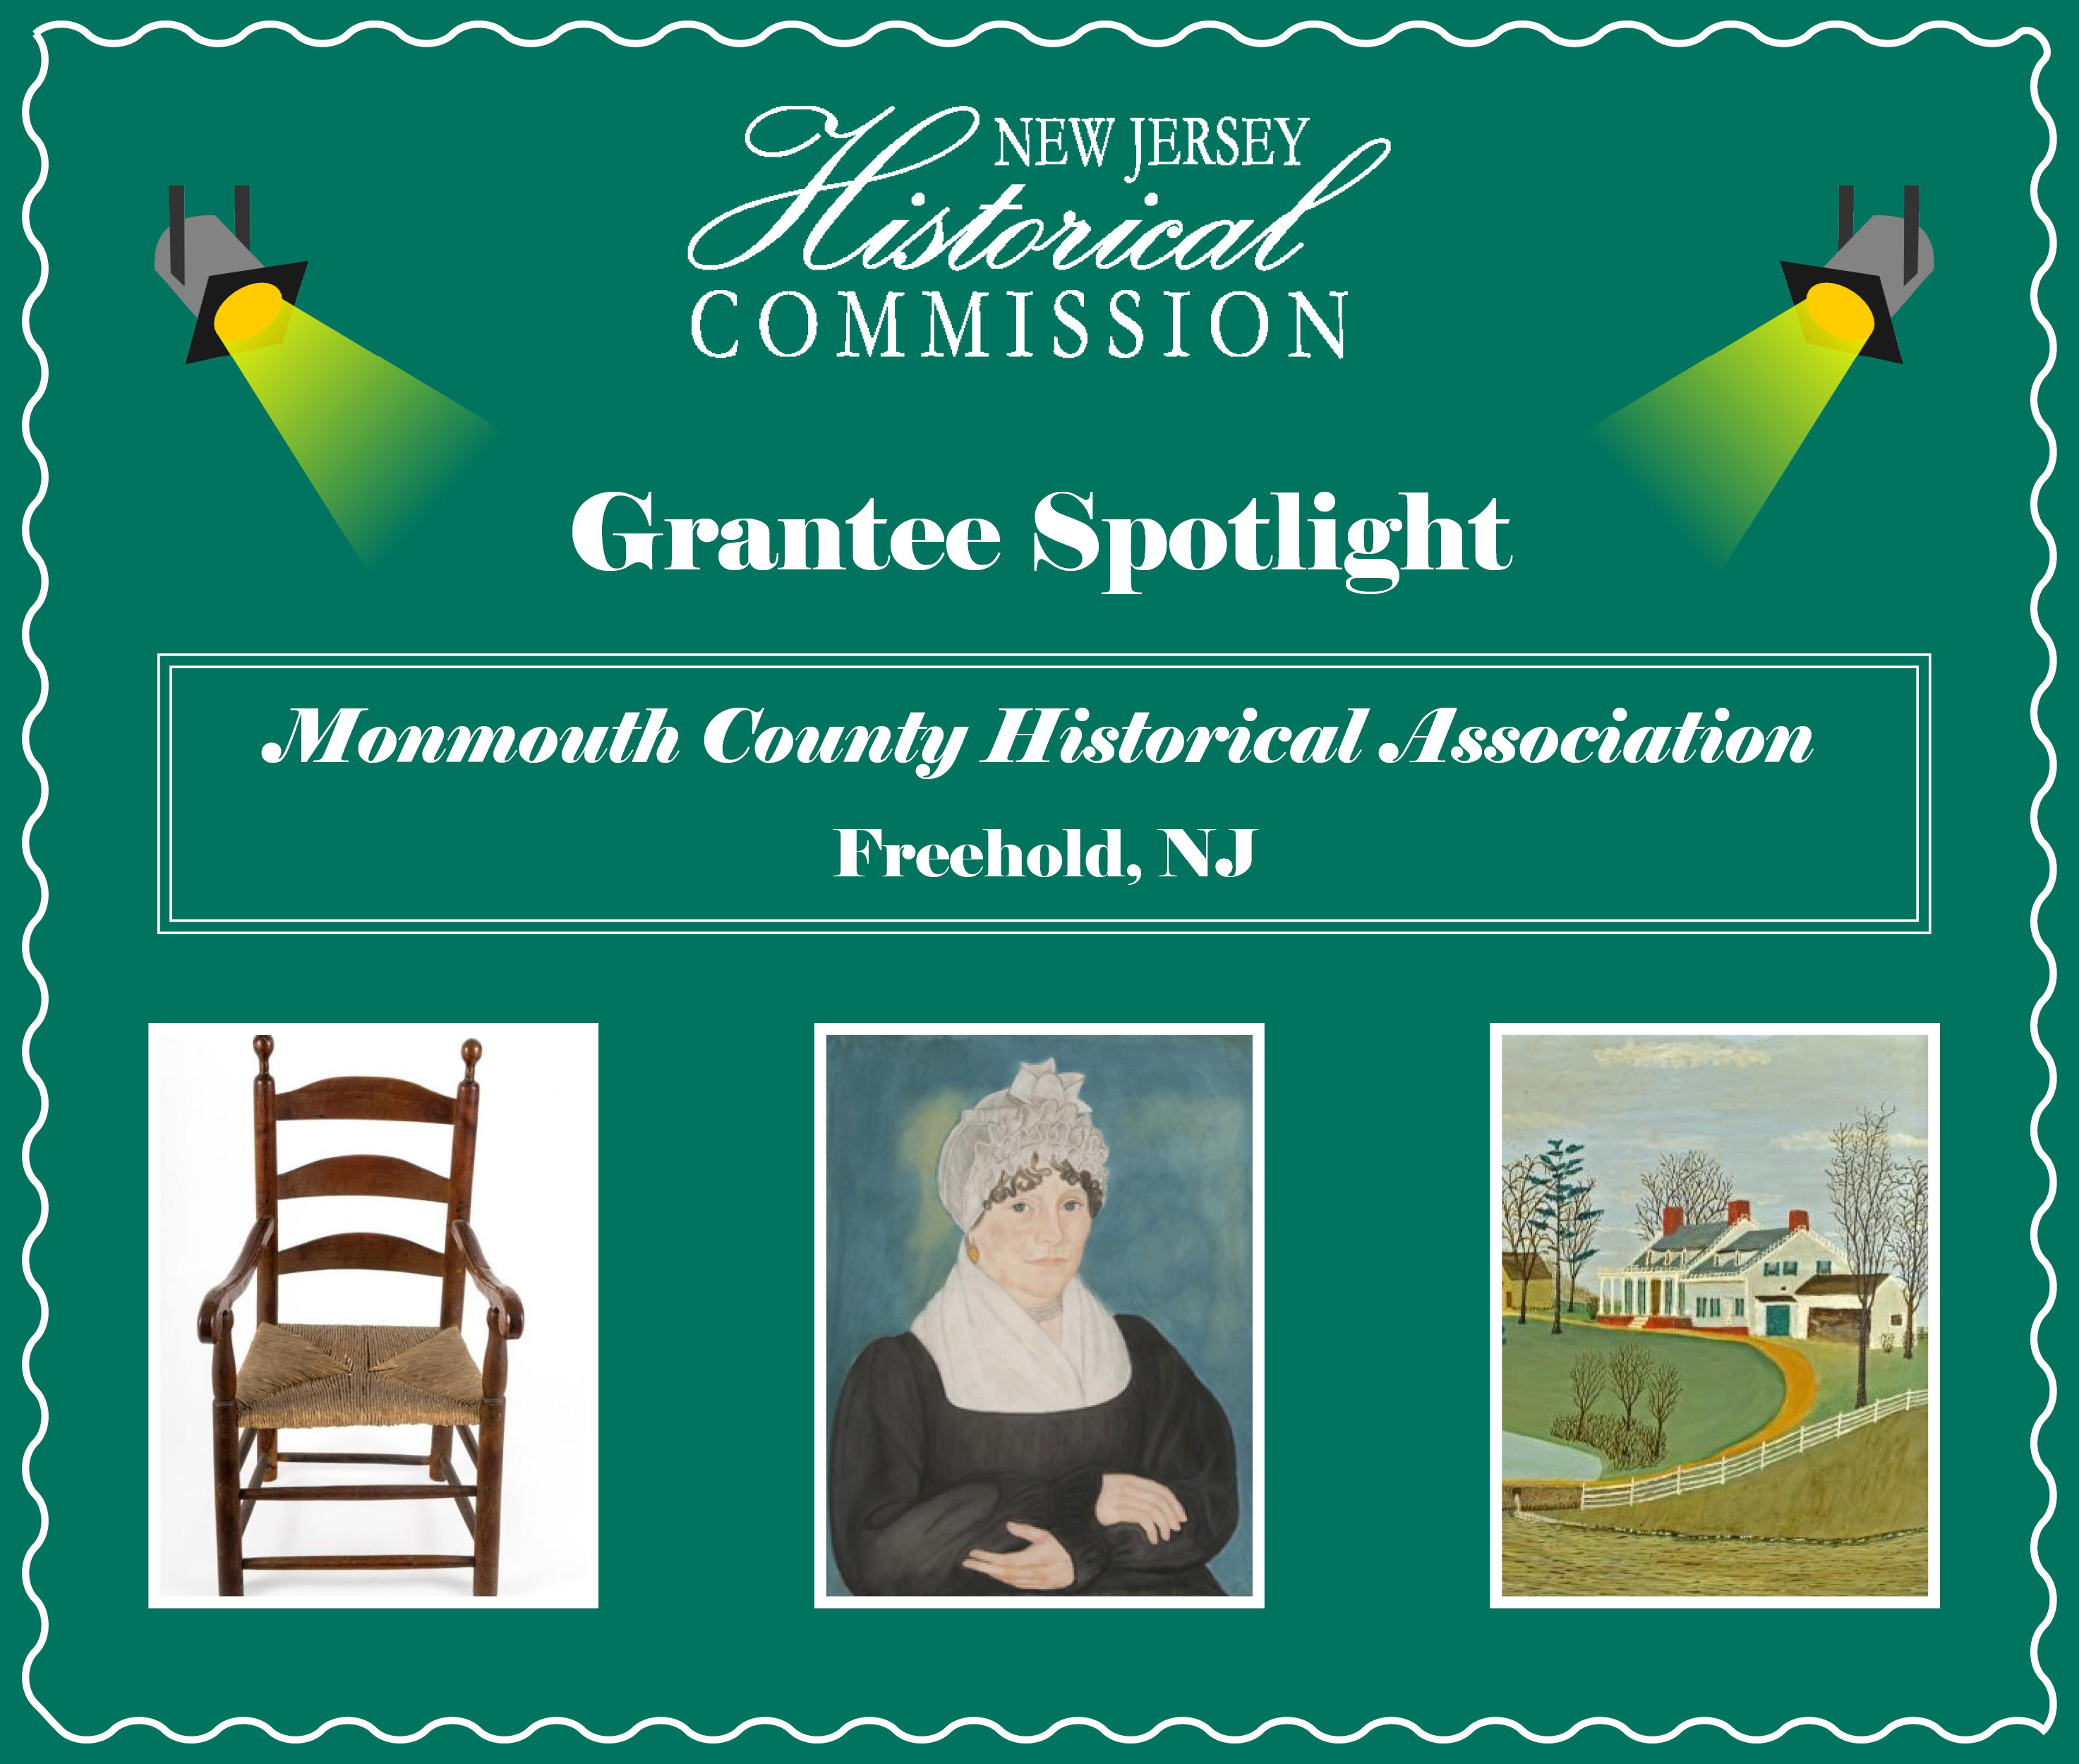 New Jersey Historical Commission (NJHC) Grantee Spotlight: Monmouth County Historical Association